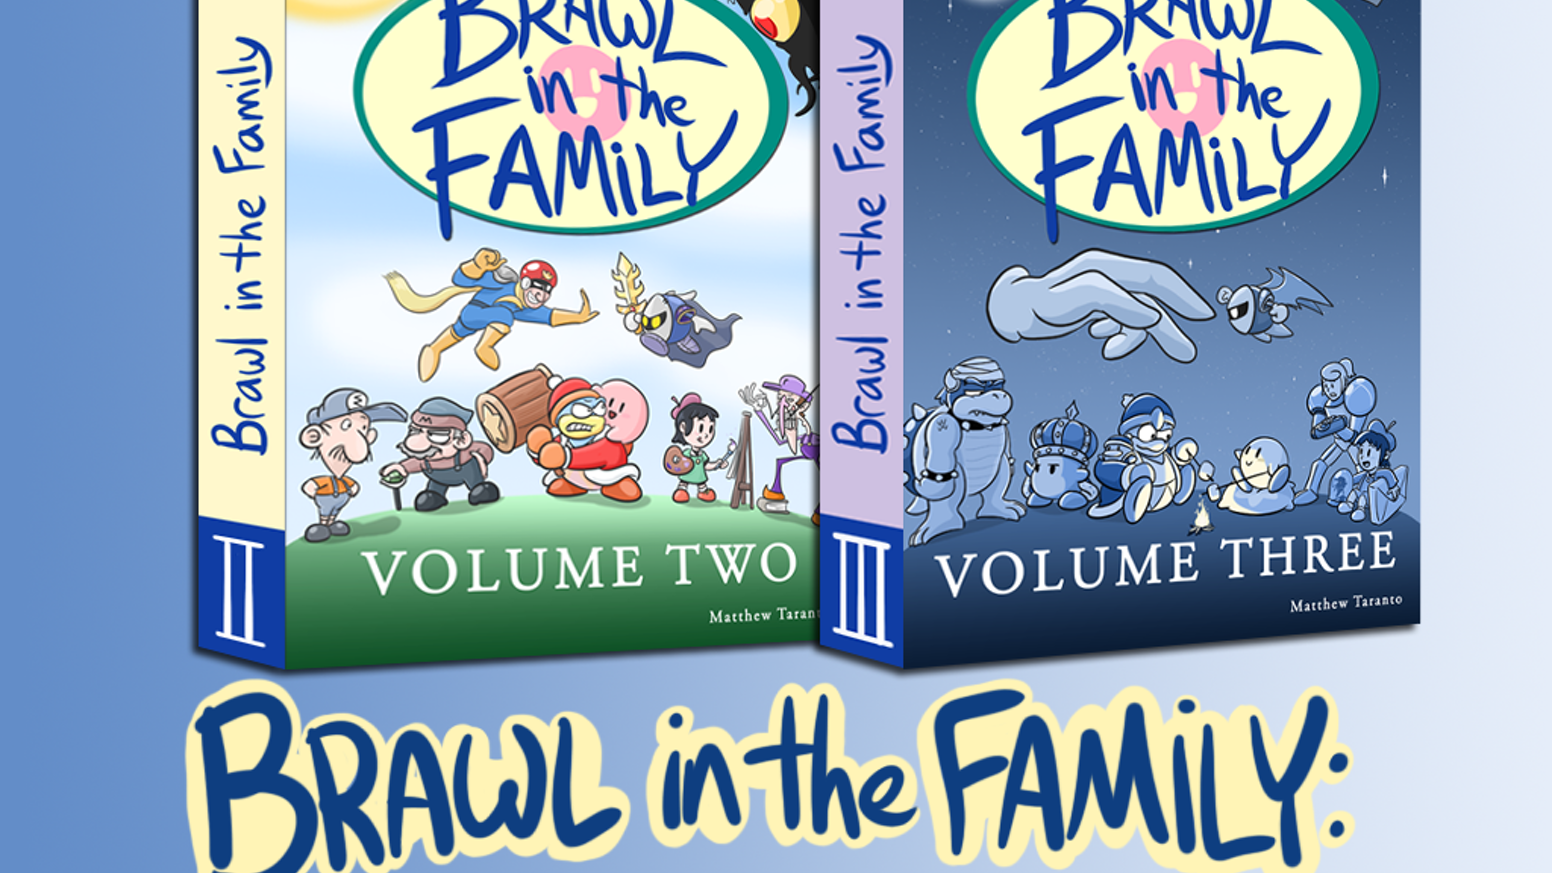 Brawl in the Family: The Complete Collection by Matthew